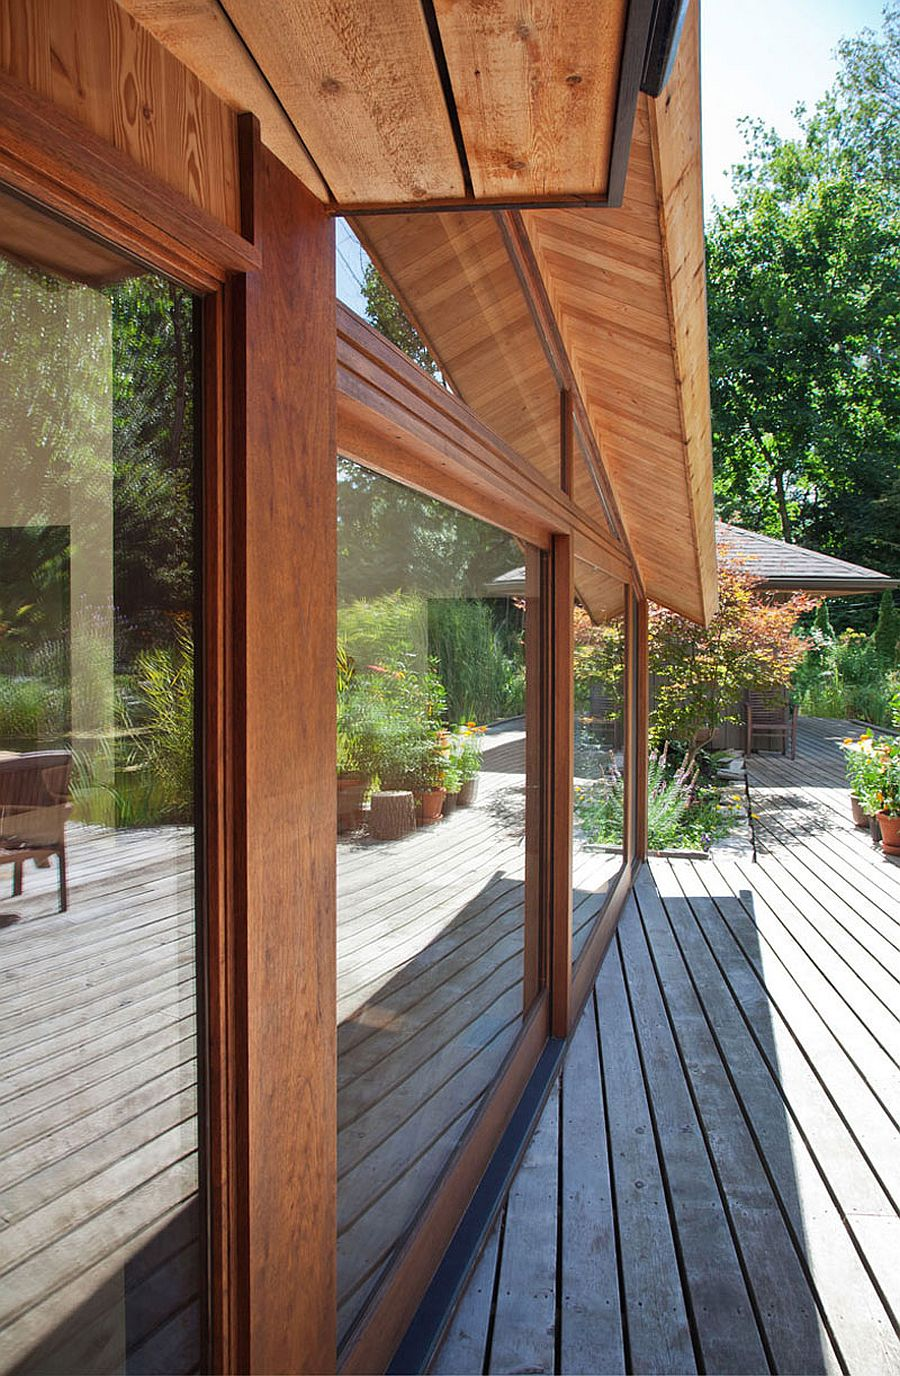 Sliding glass doors that connect the home with the deck outside